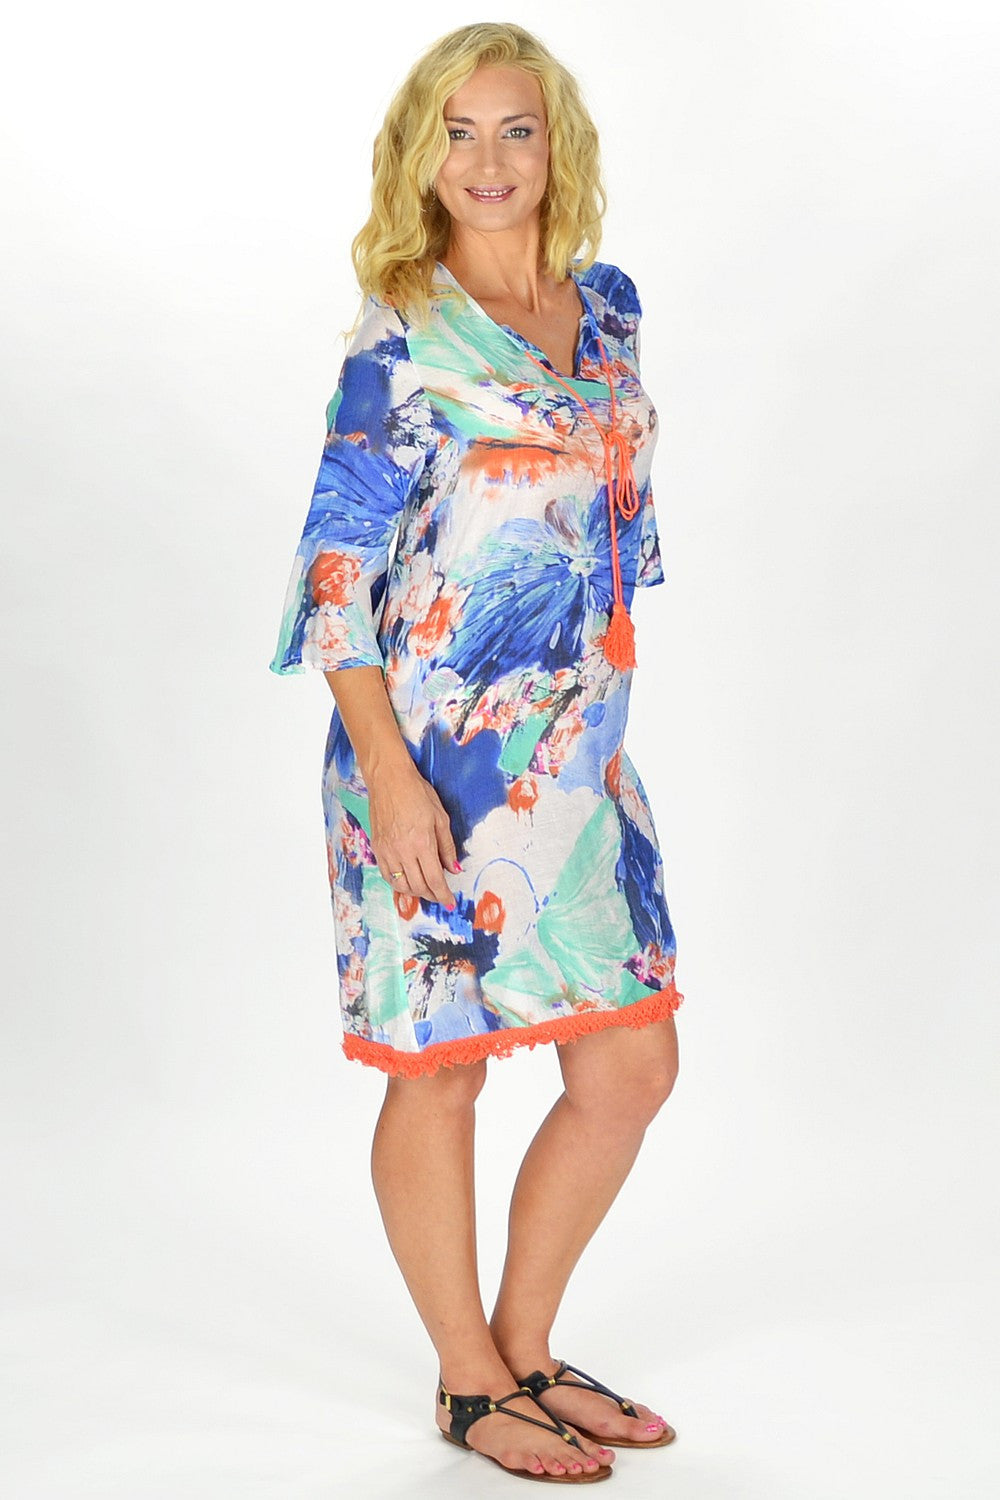 Orange Sunshine Tunic - at I Love Tunics @ www.ilovetunics.com = Number One! Tunics Destination